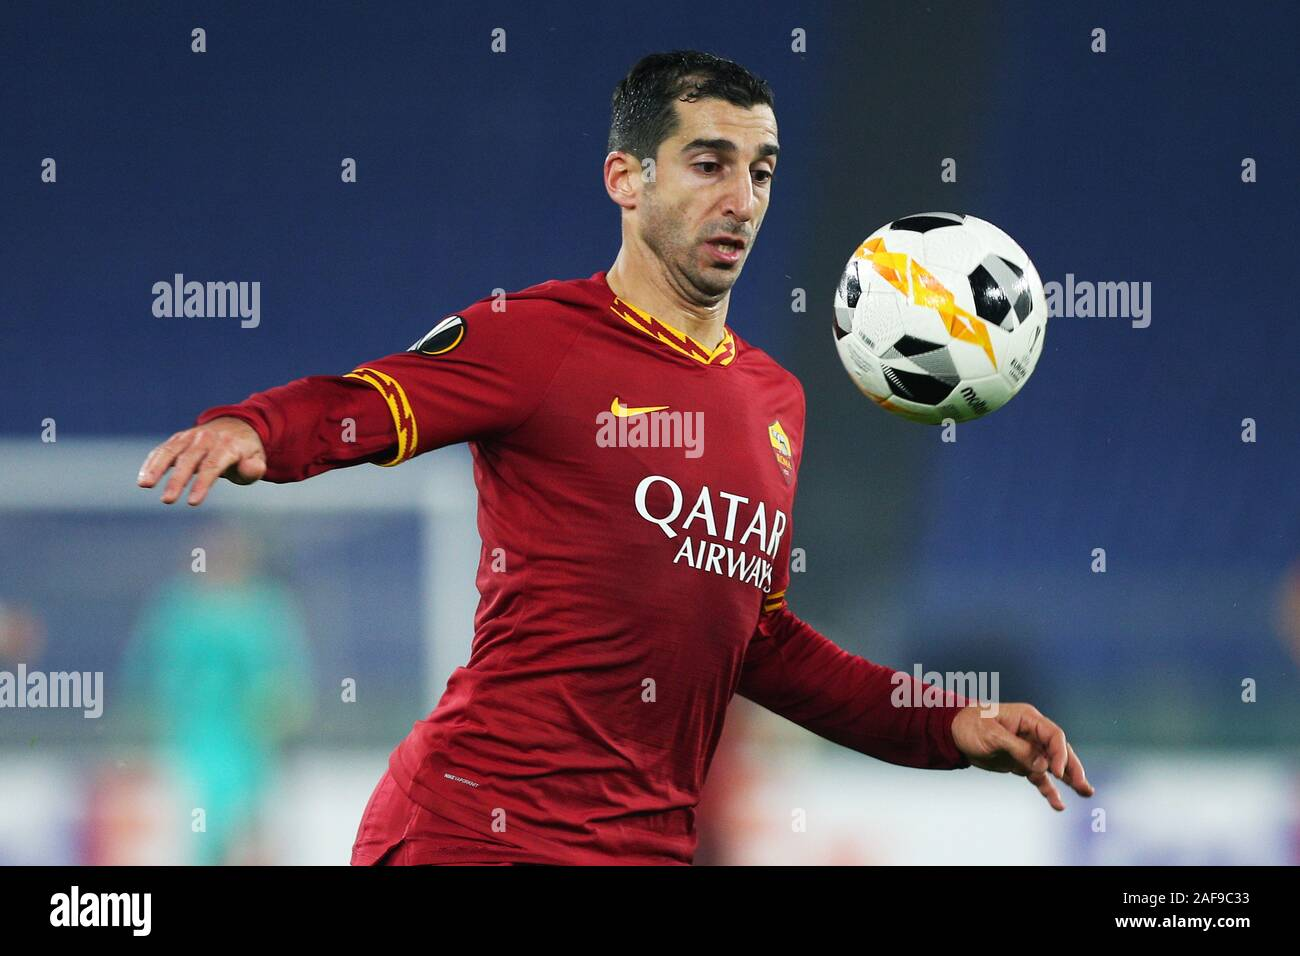 Henrikh Mkhitaryan of Roma in action during the UEFA Europa League, Group J football match between AS Roma and Wolfsberg AC on December 12, 2019 at Stadio Olimpico in Rome, Italy - Photo Federico Proietti/ESPA-Images Stock Photo